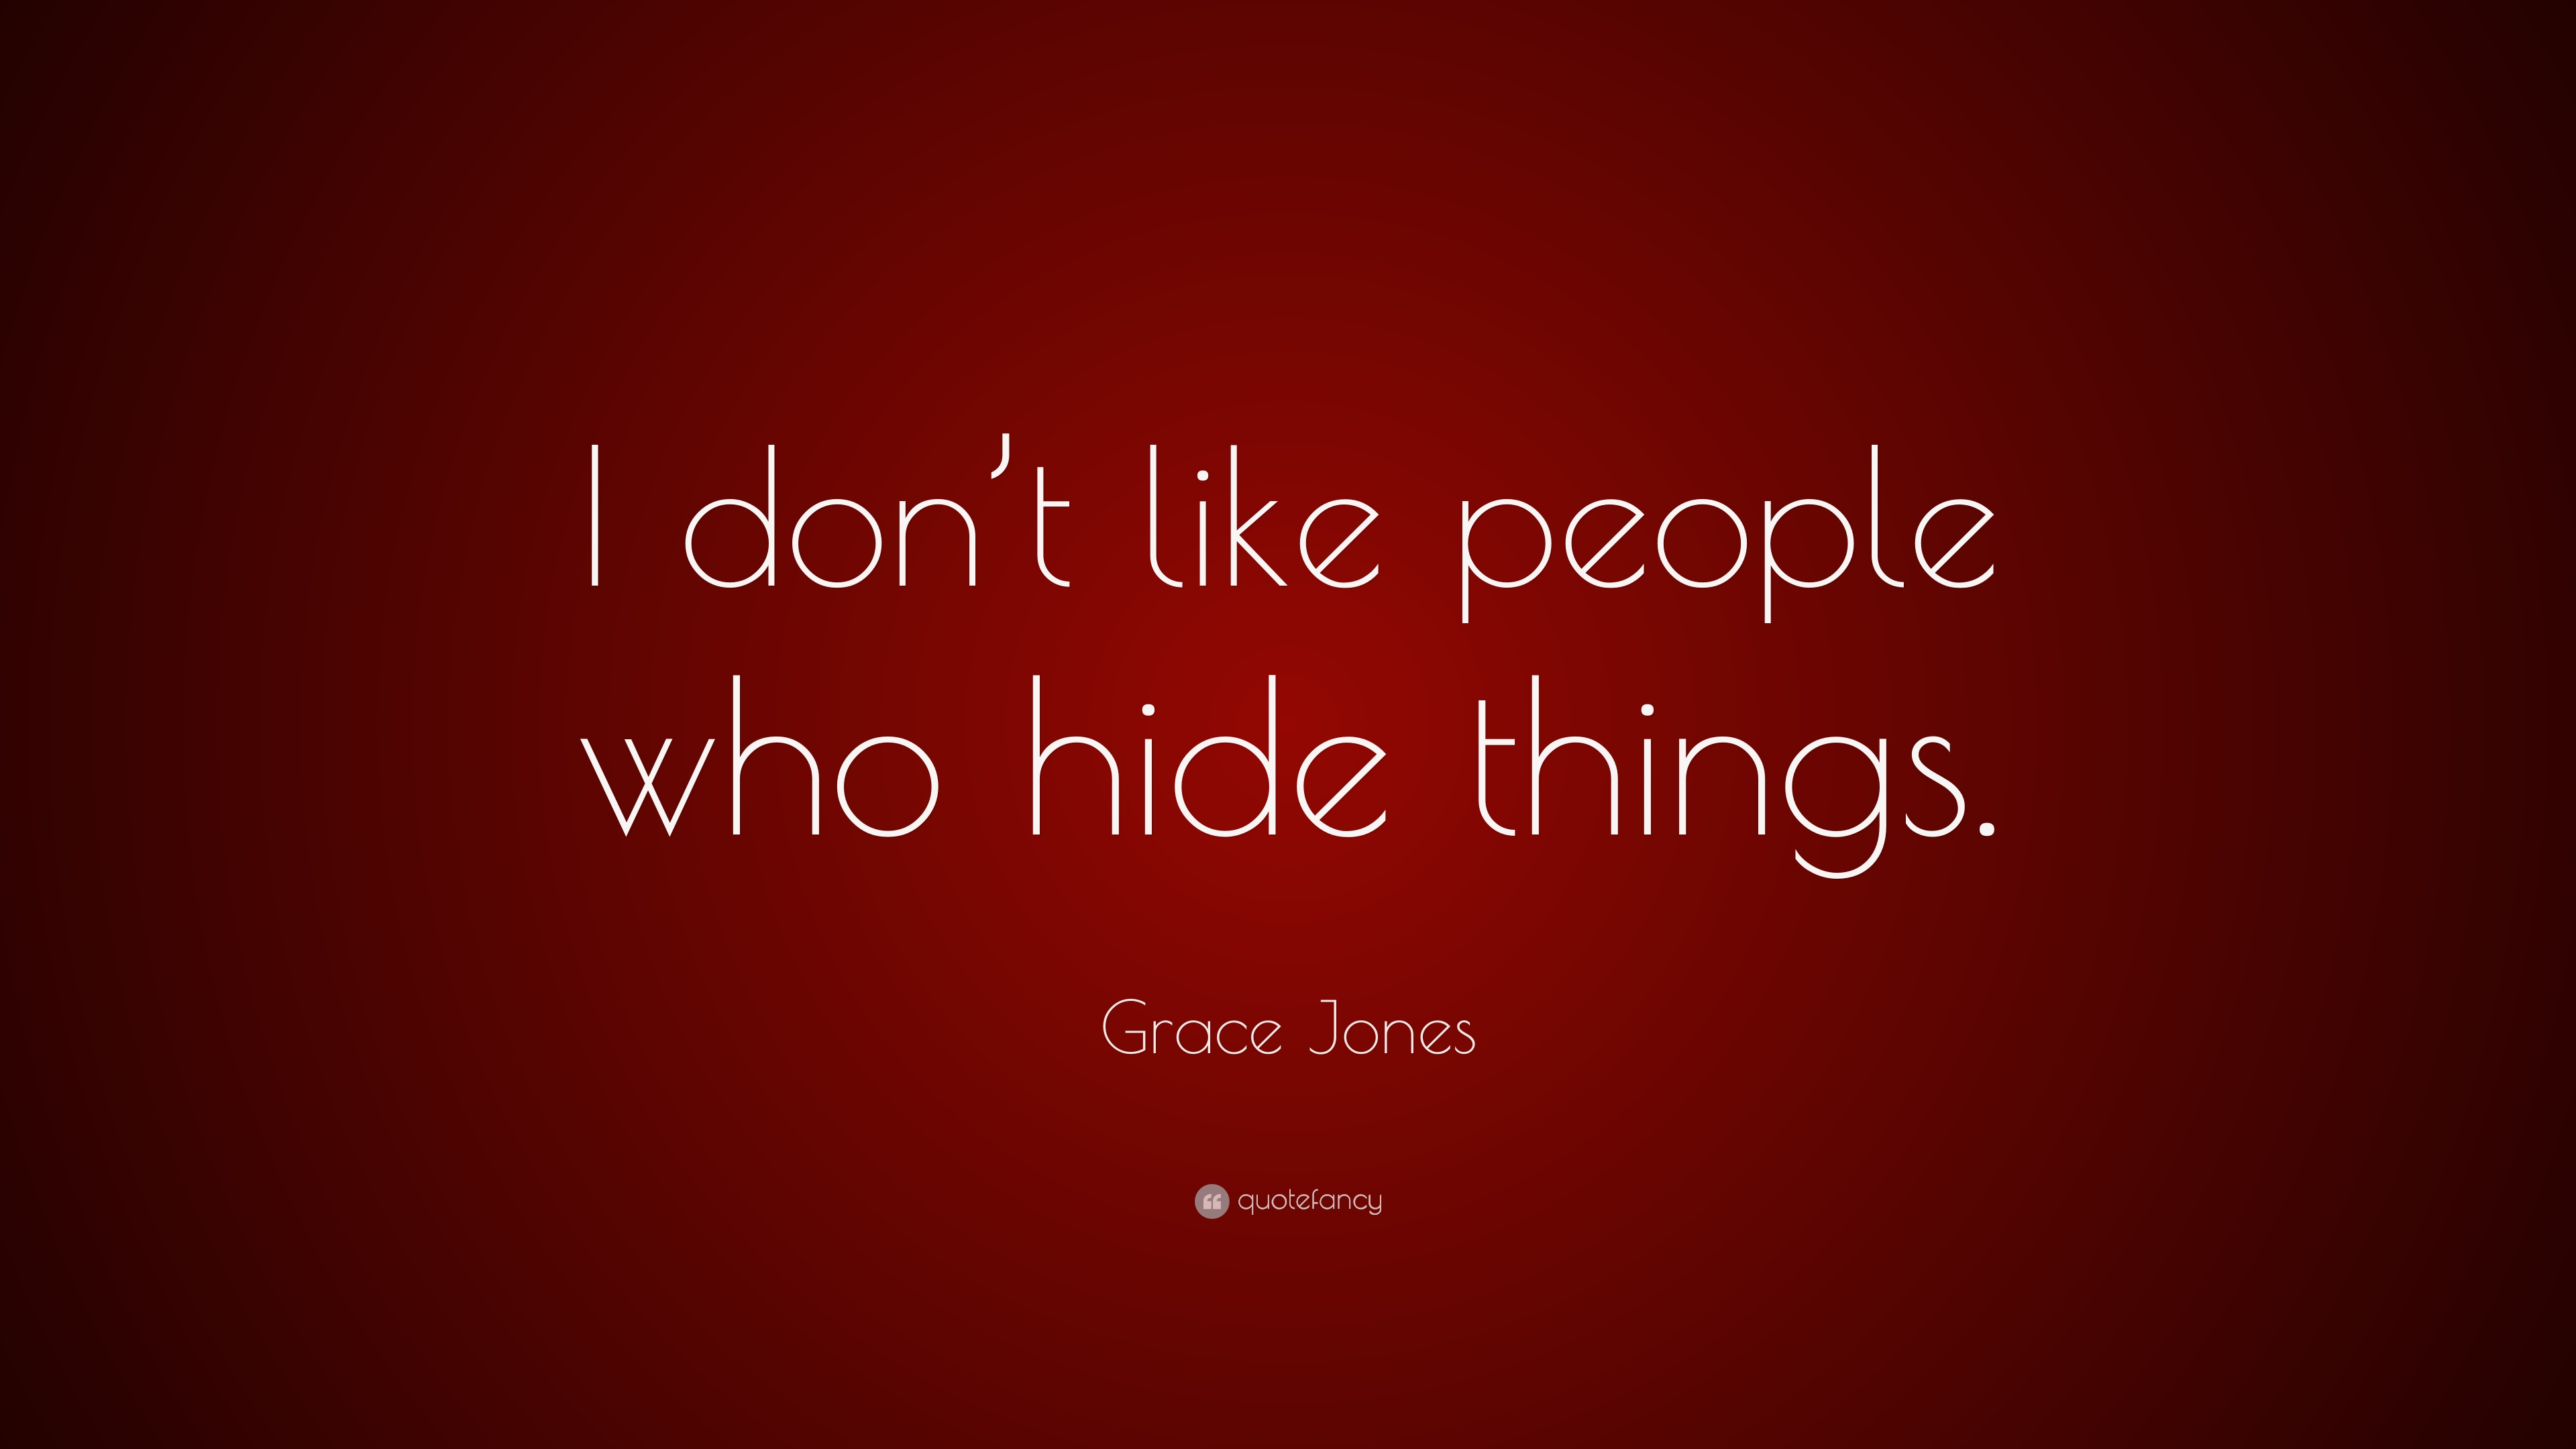 Grace Jones Quotes 58 Wallpapers Quotefancy